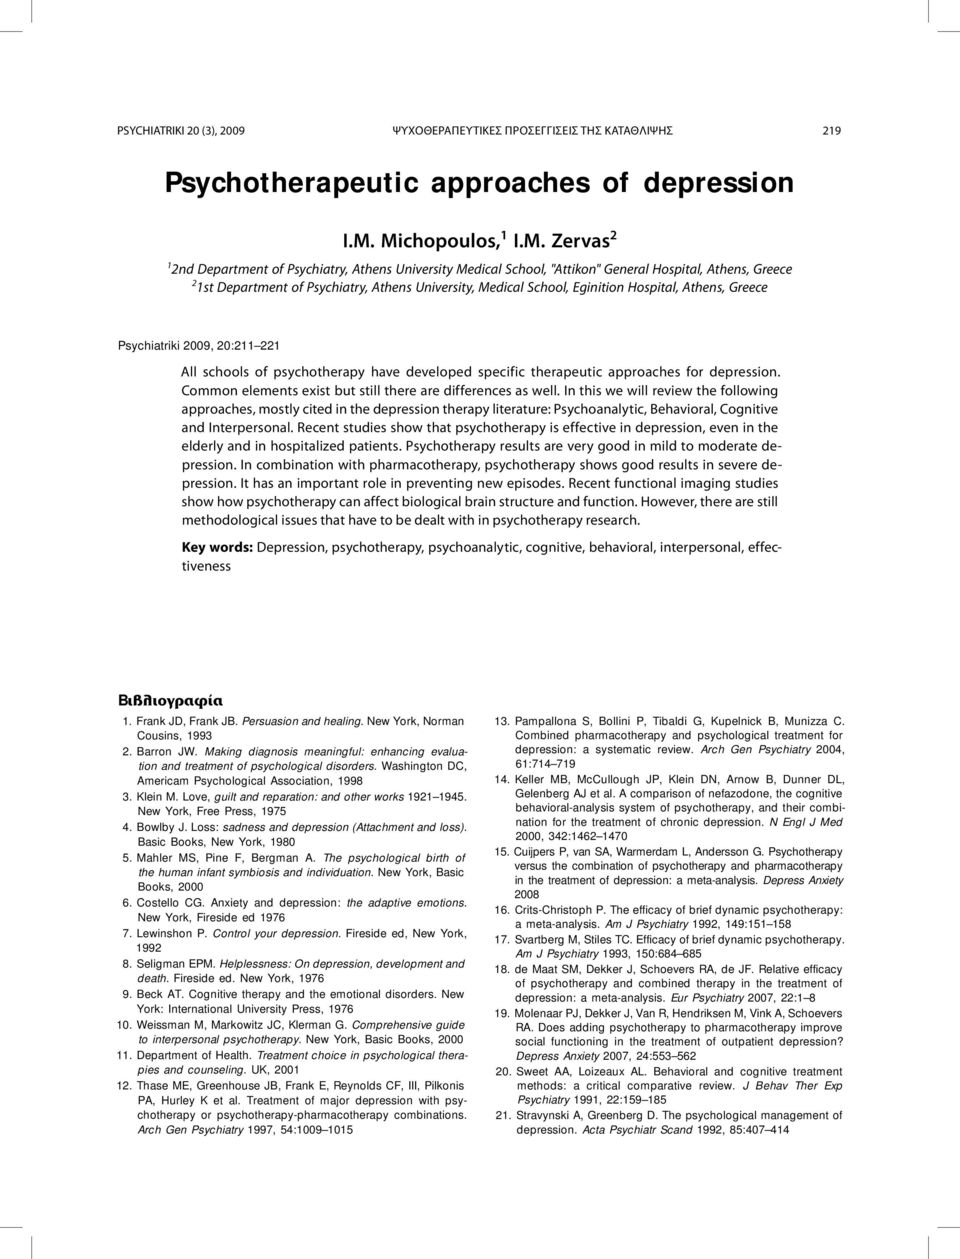 School, Eginition Hospital, Athens, Greece Psychiatriki 2009, 20:211 221 All schools of psychotherapy have developed specific therapeutic approaches for depression.